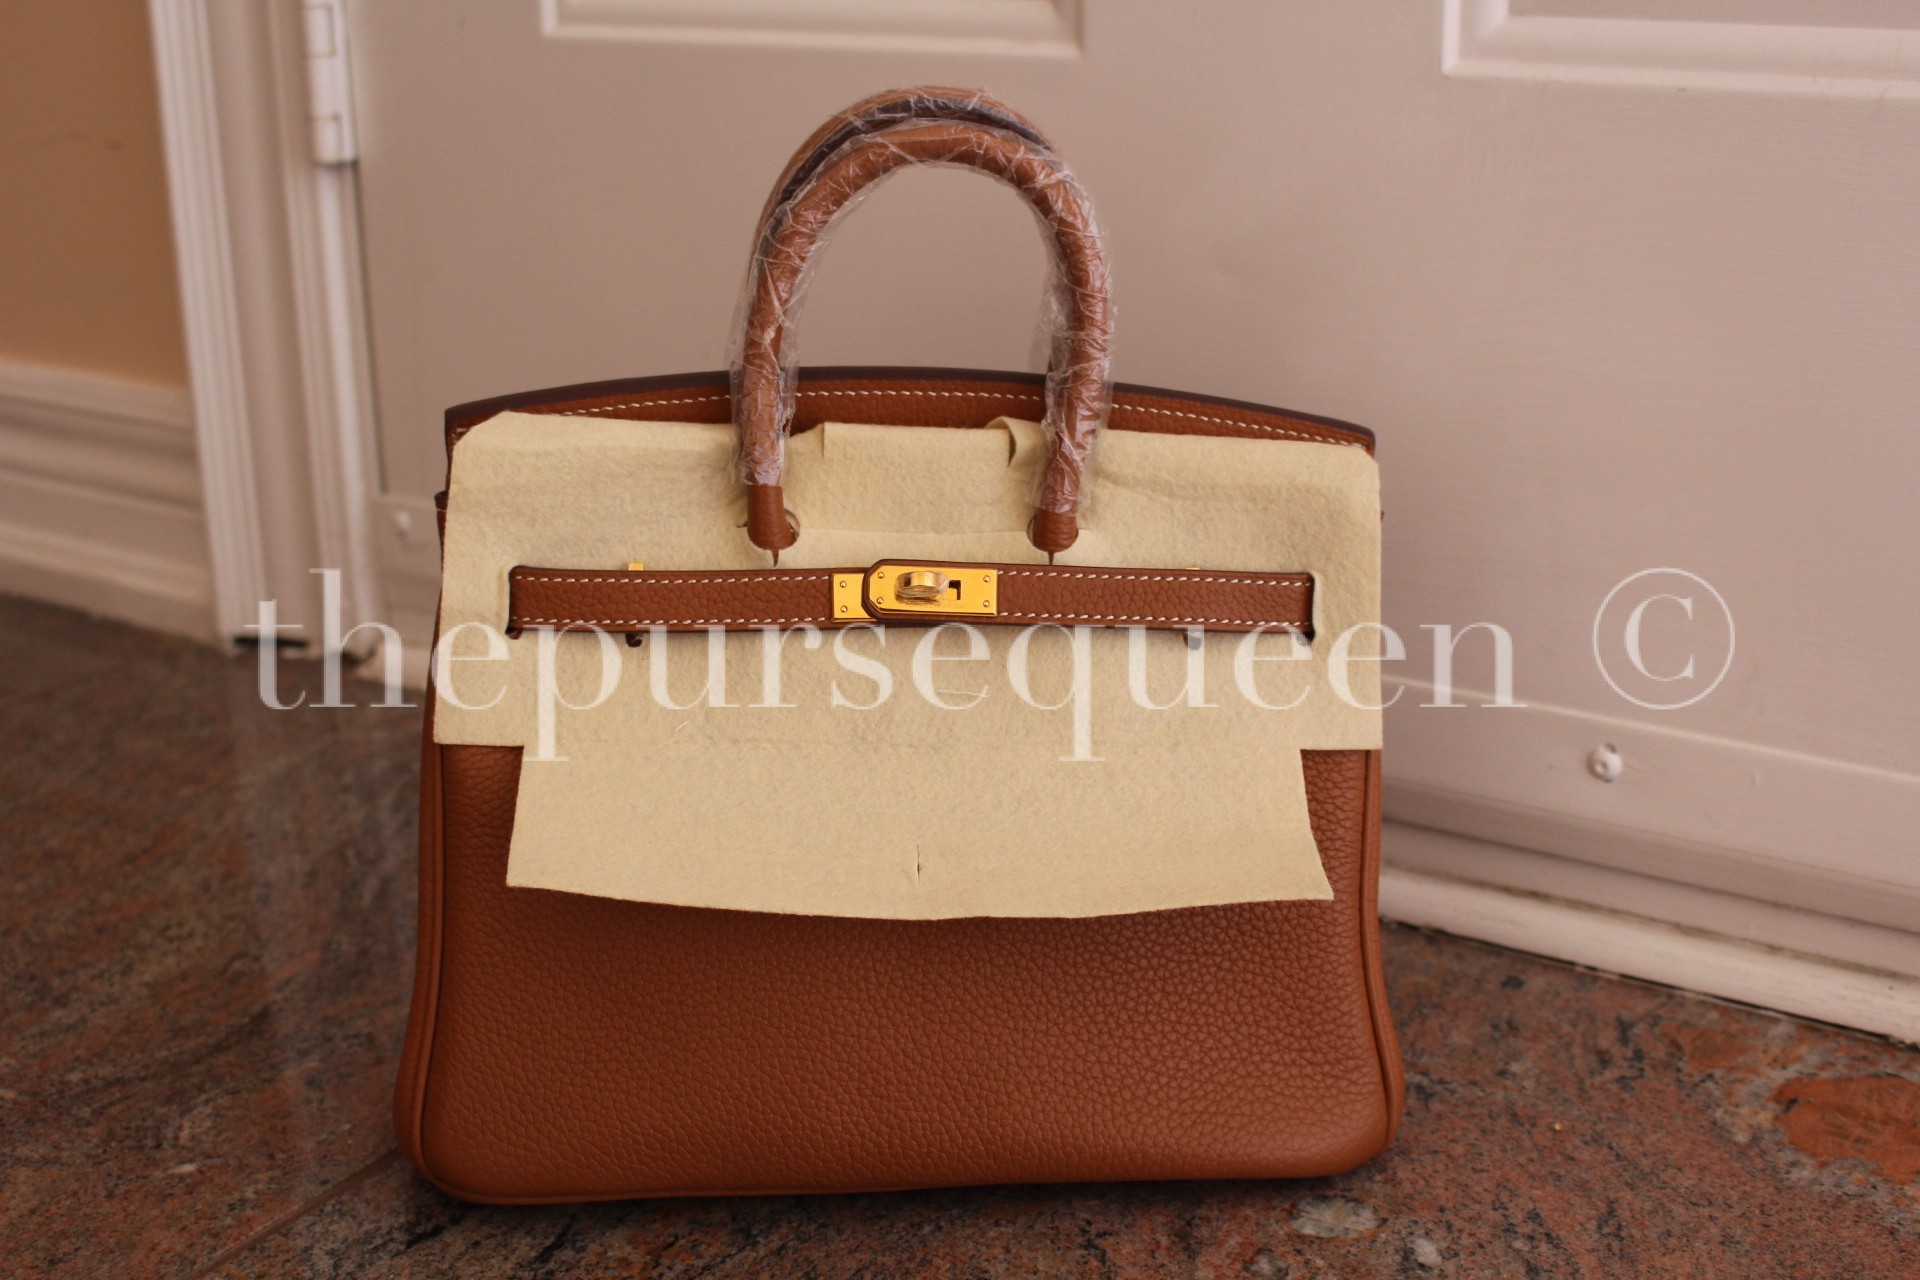 Perfect Hermes Birkin Replica Review - Authentic   Replica Handbag Reviews  by The Purse Queen 07ee300ae087a